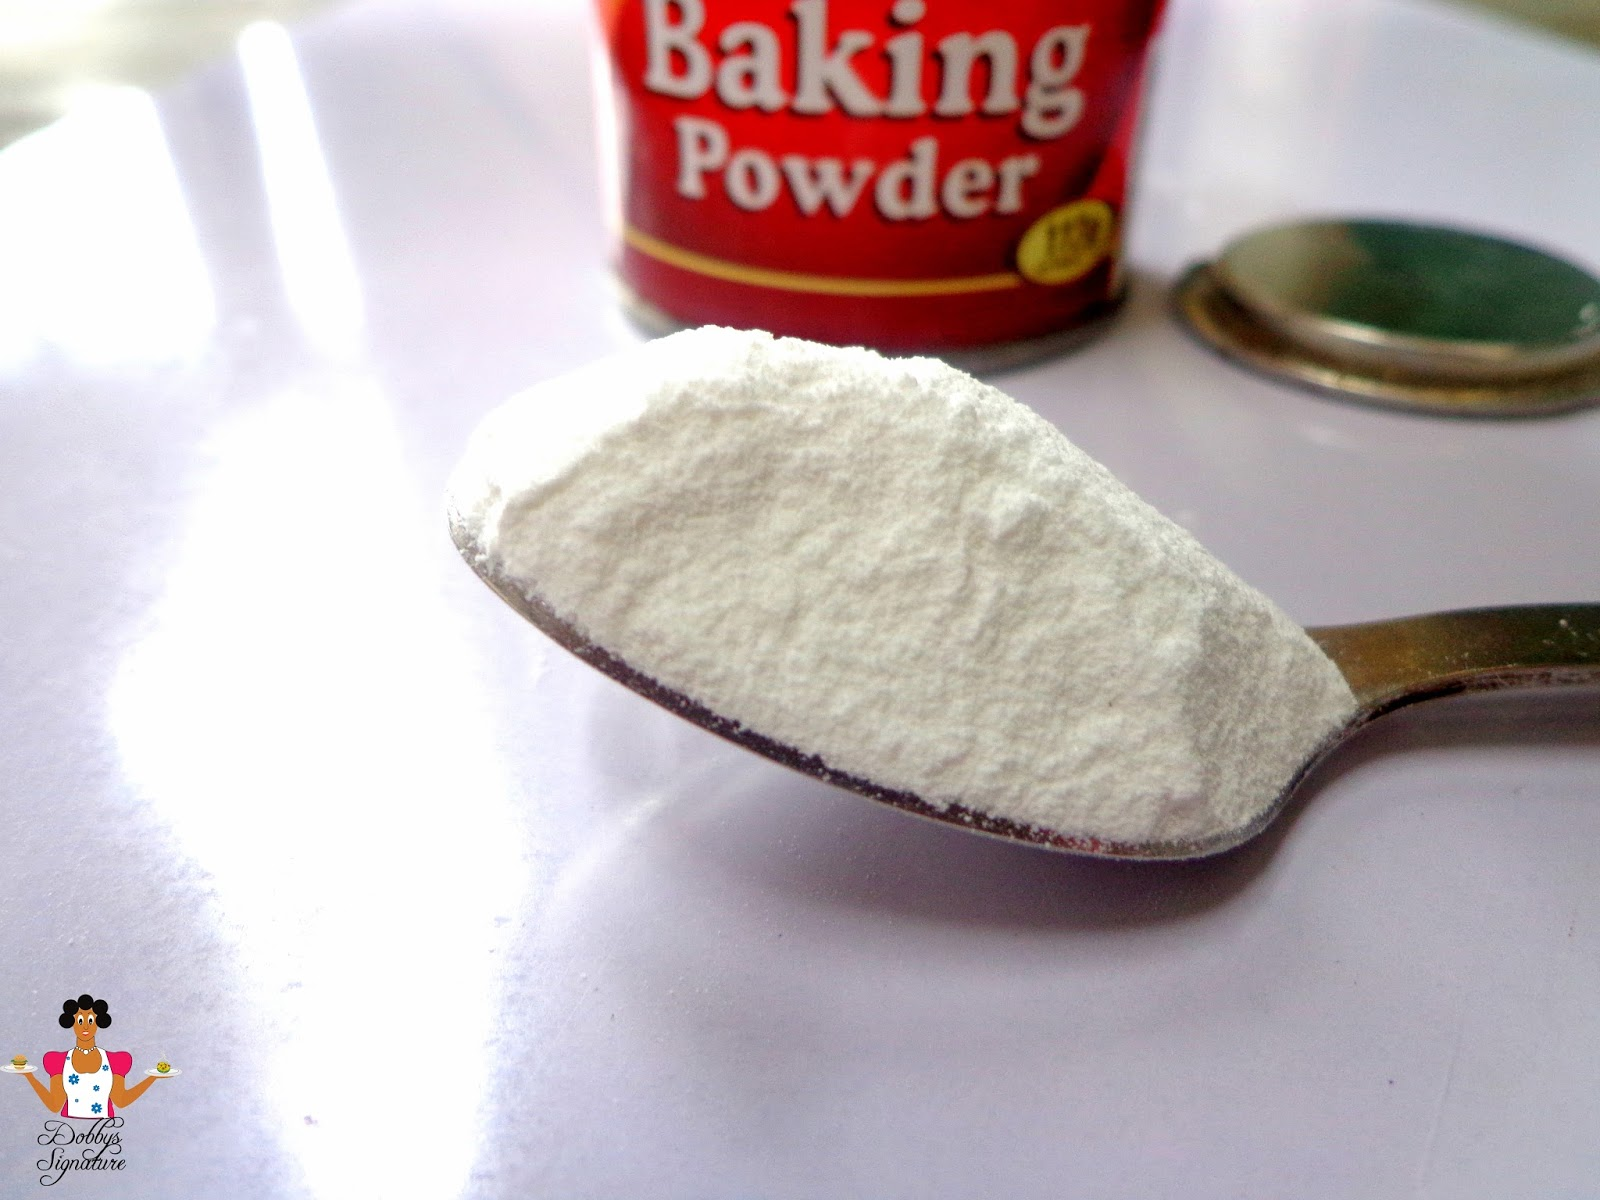 how to use baking powder to clean mattress